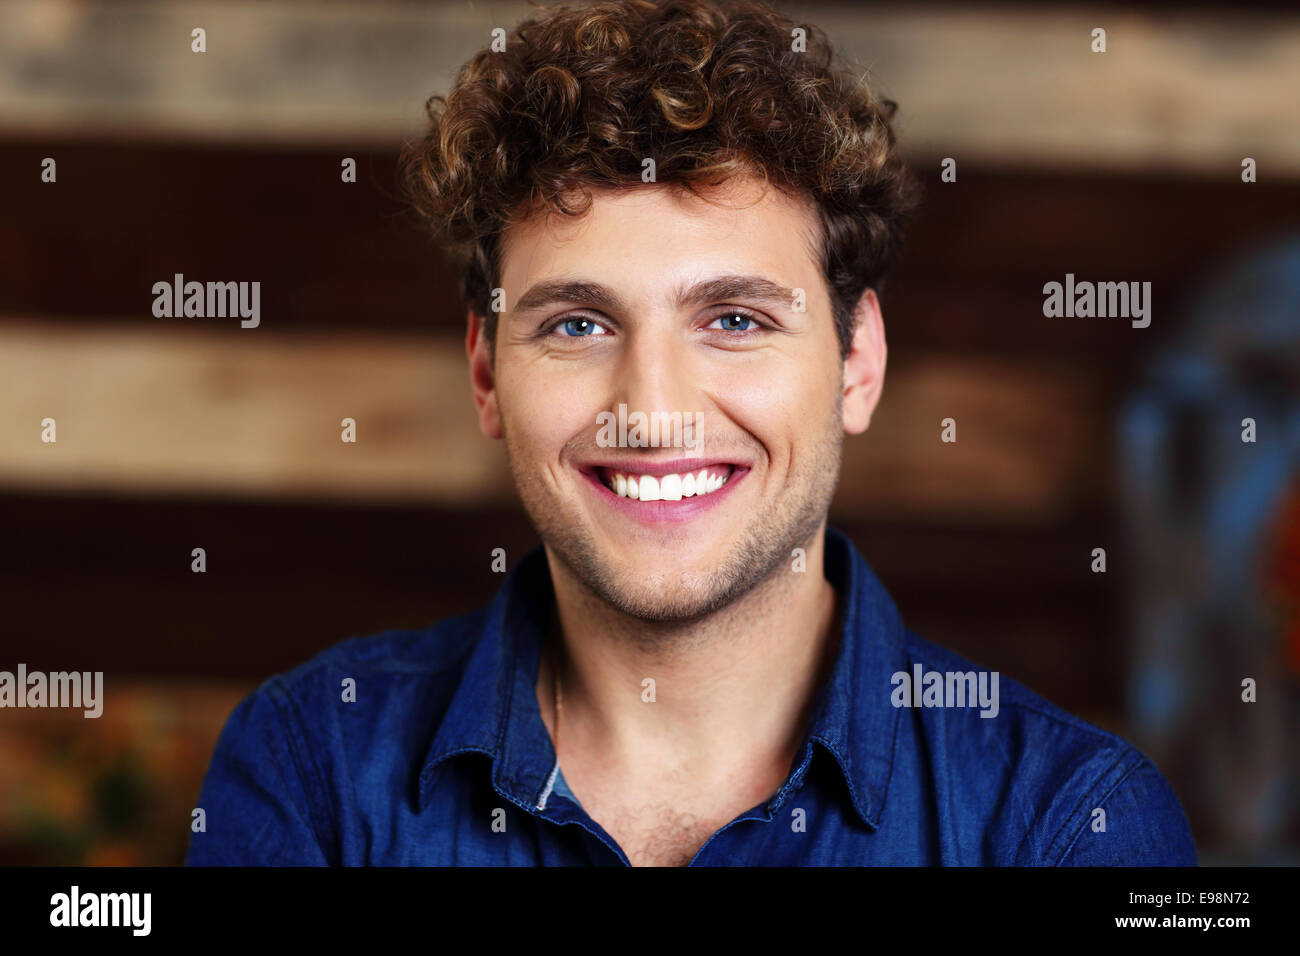 Portrait of a smiling handsome man with curly hair - Stock Image